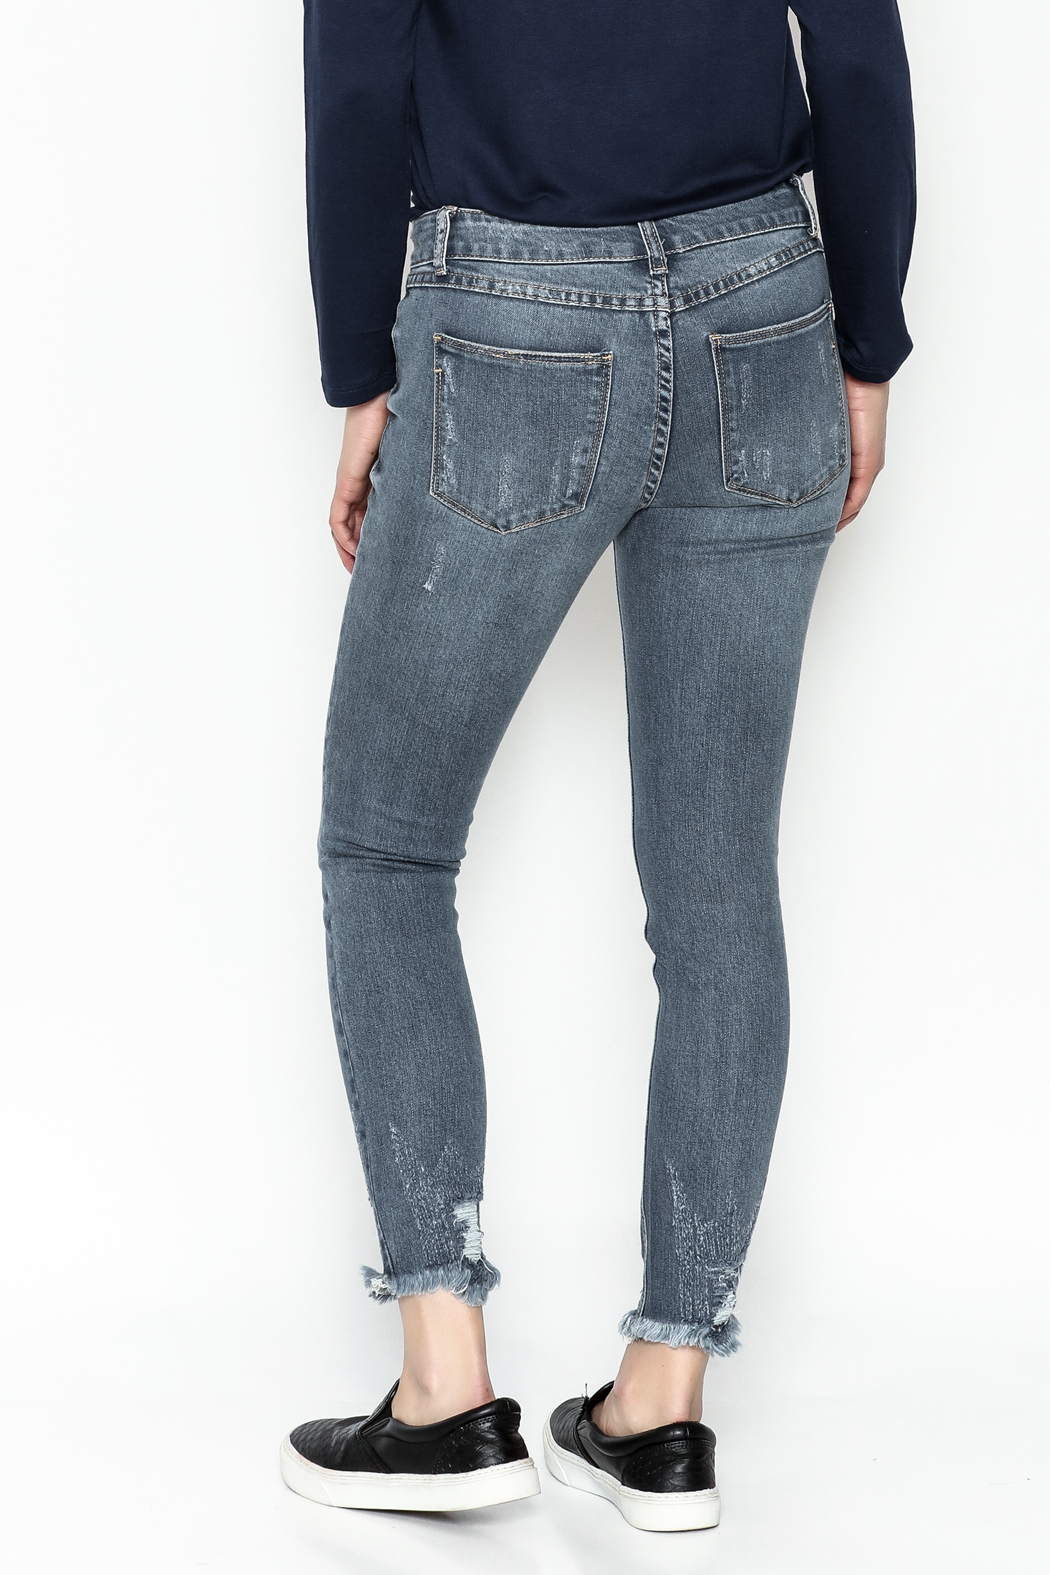 Current Air Jenee Distressed Jeans - Back Cropped Image